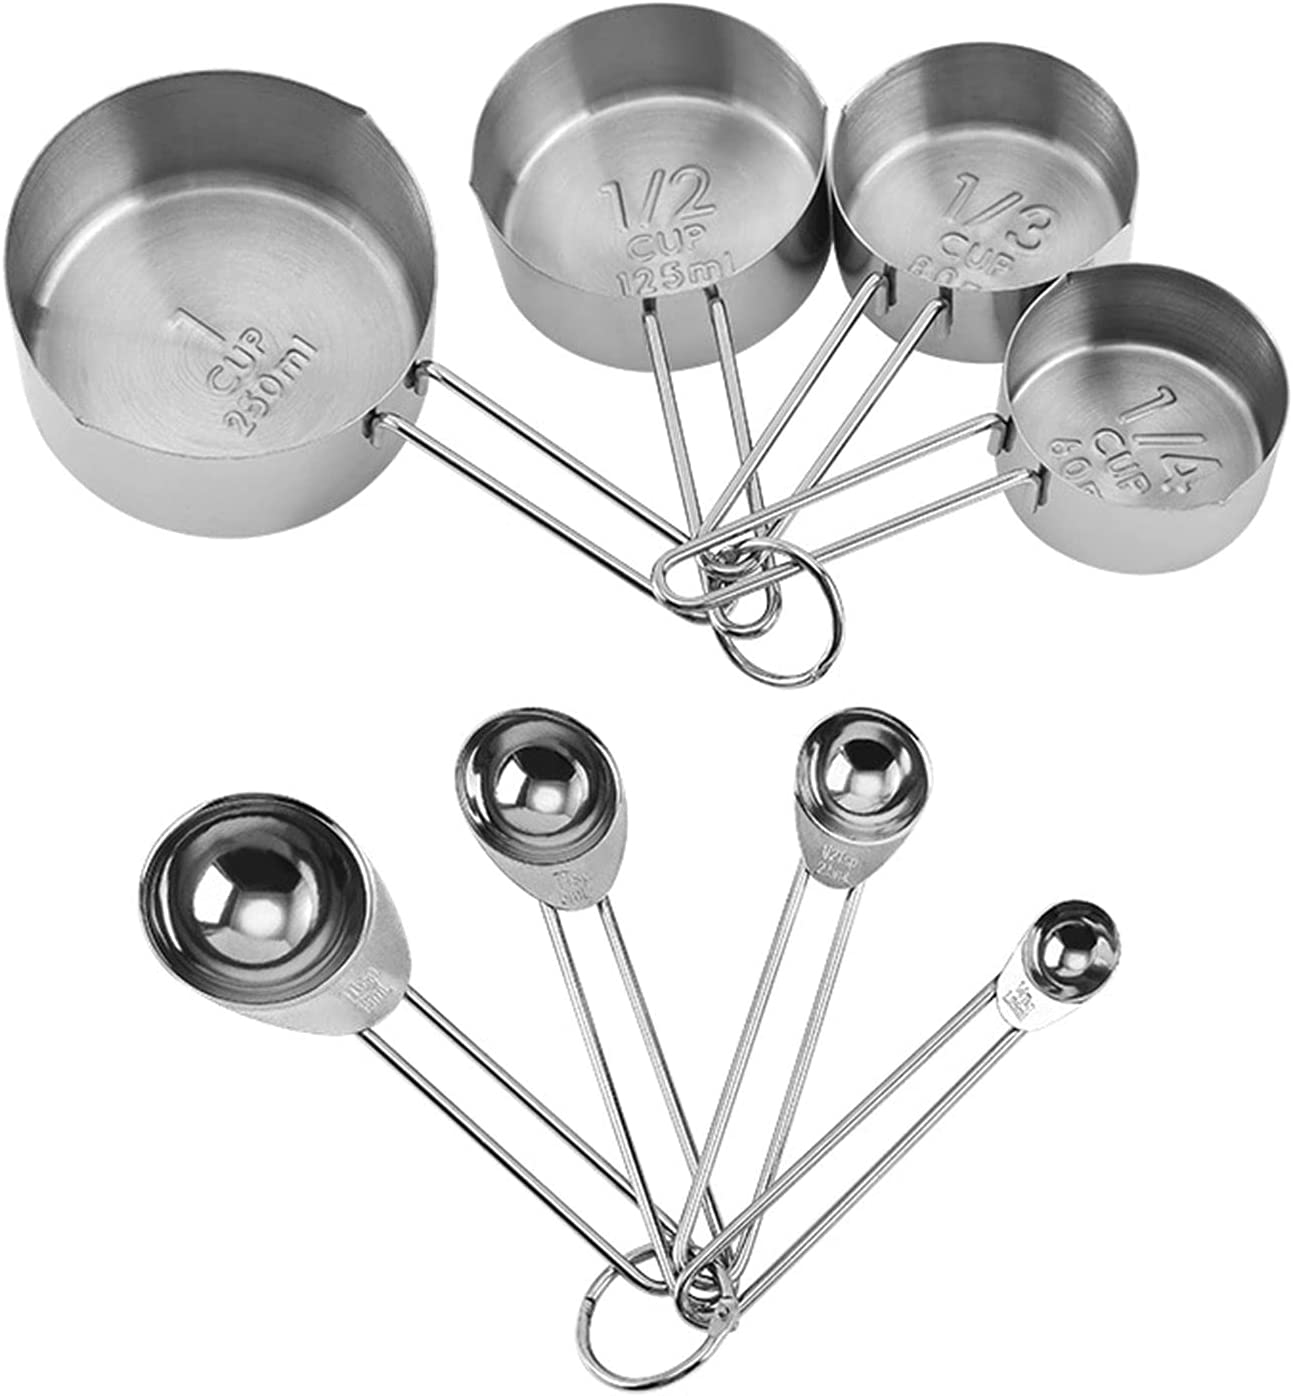 High quality new GQFGYYL Stainless Steel 4pcs Measuring and with Cups Rapid rise Spoons